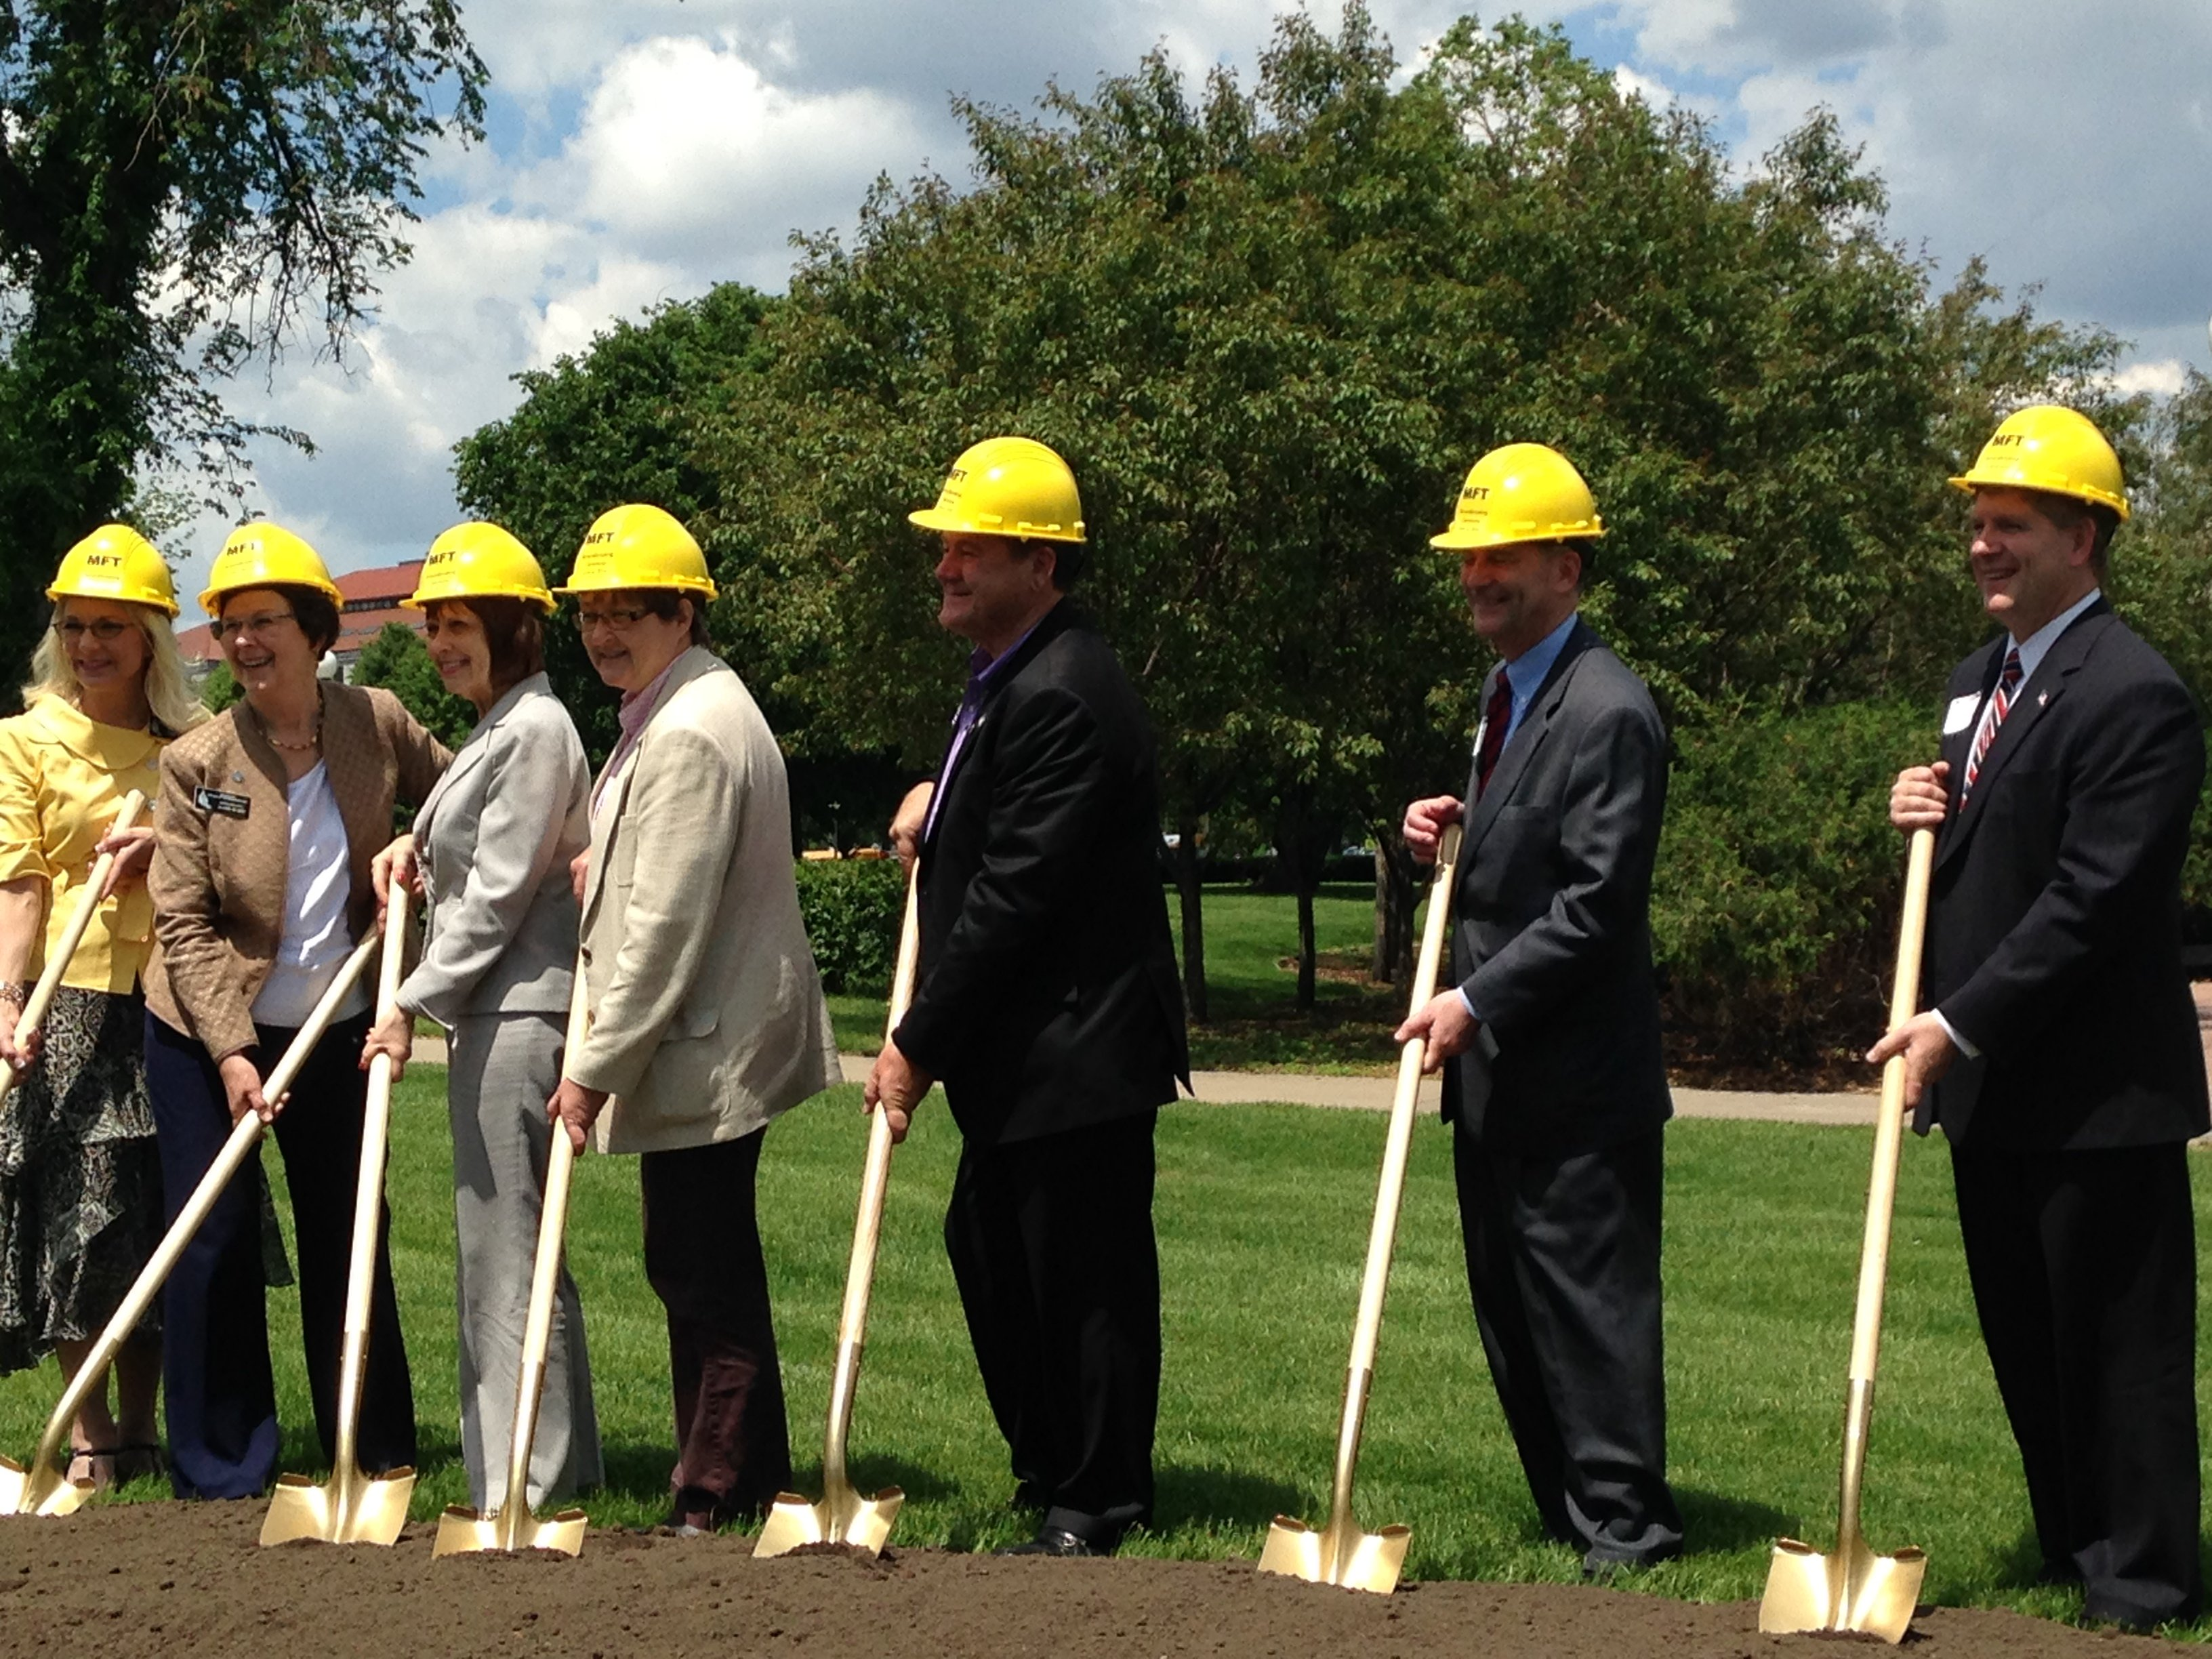 Minnesota Military Family Tribute groundbreaking, Capitol grounds, St Paul, Mn - 04 June 2014